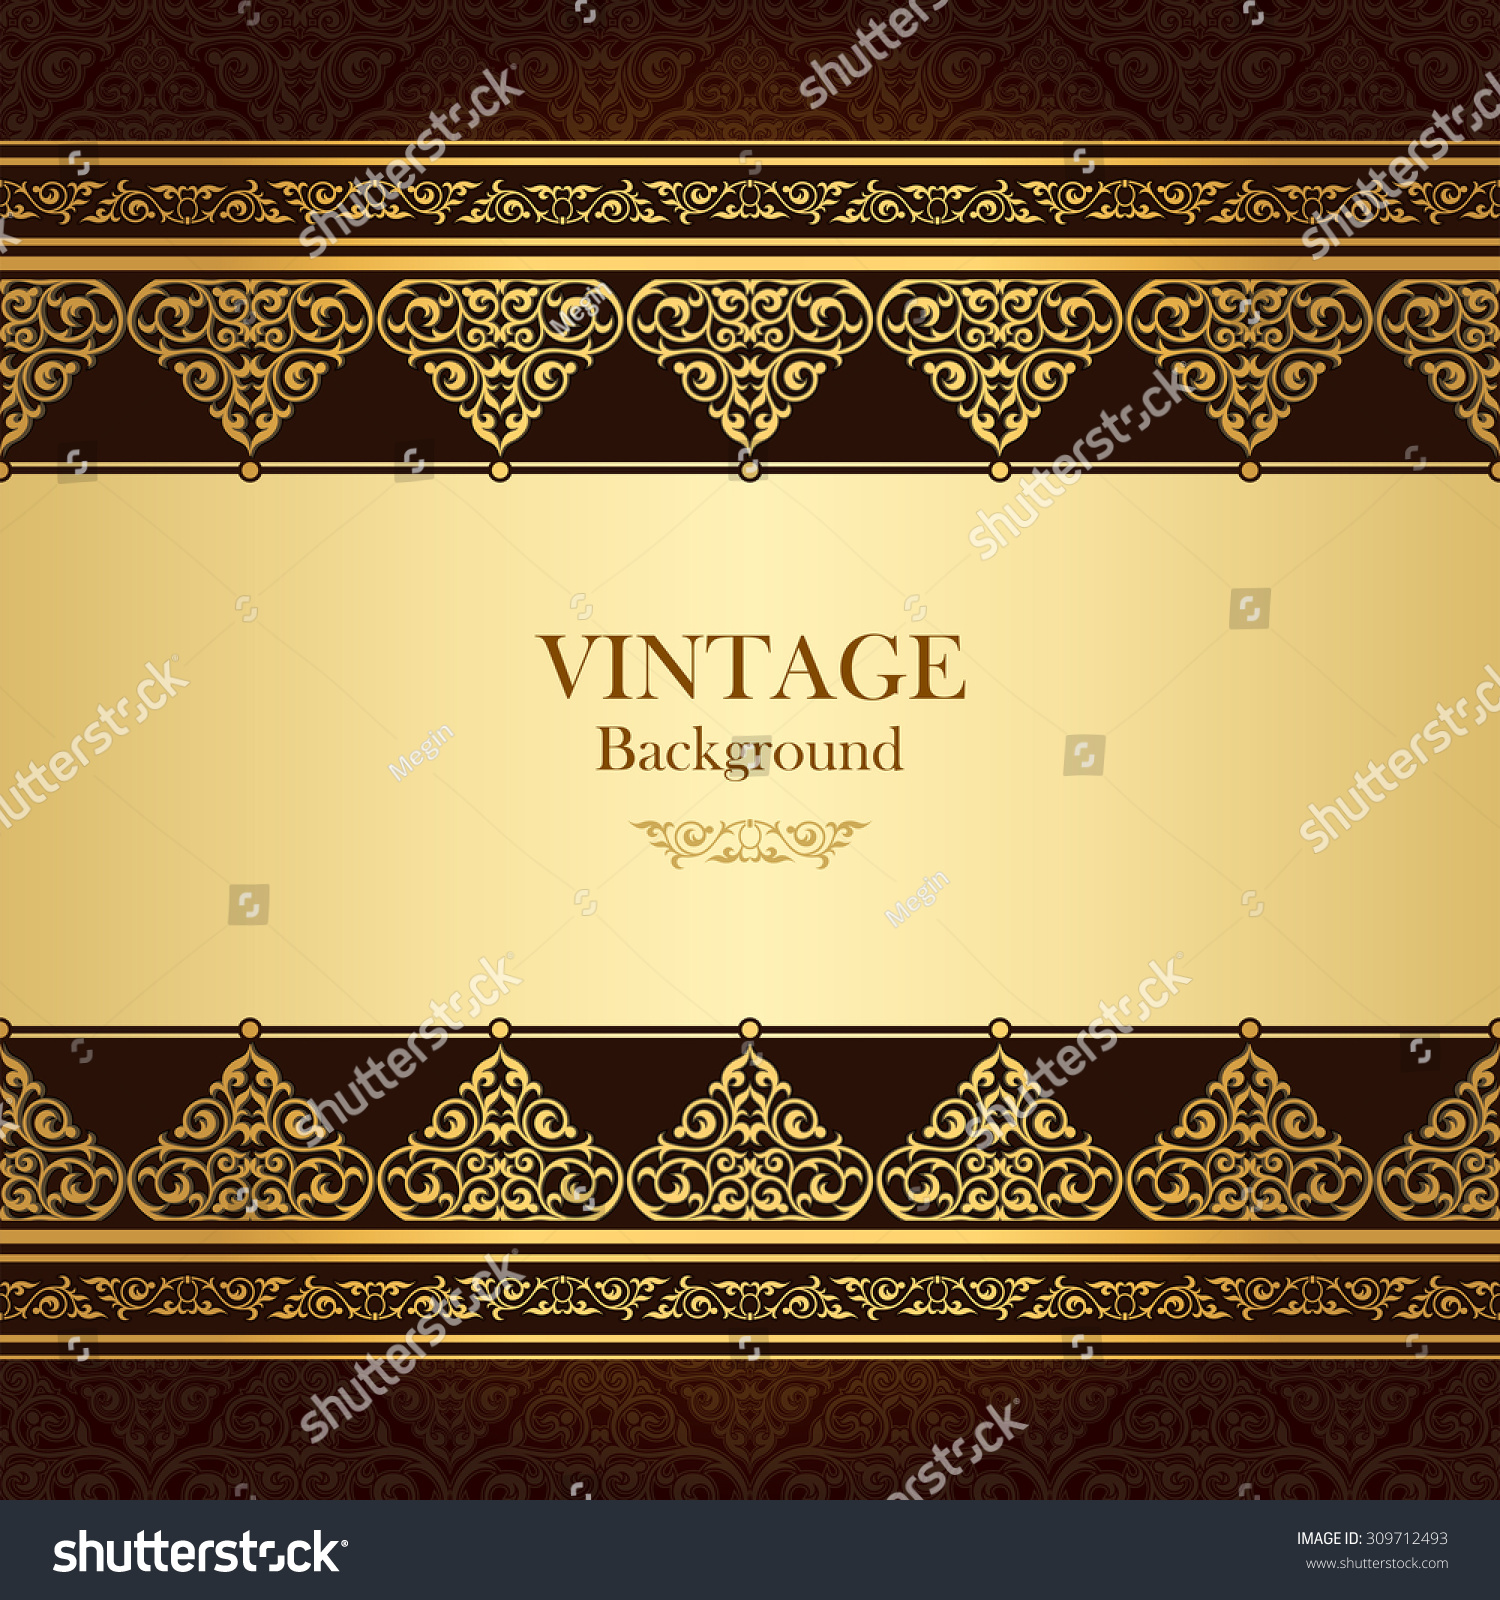 Quran Book Cover Template : Vintage vector card islamic style seamless stock